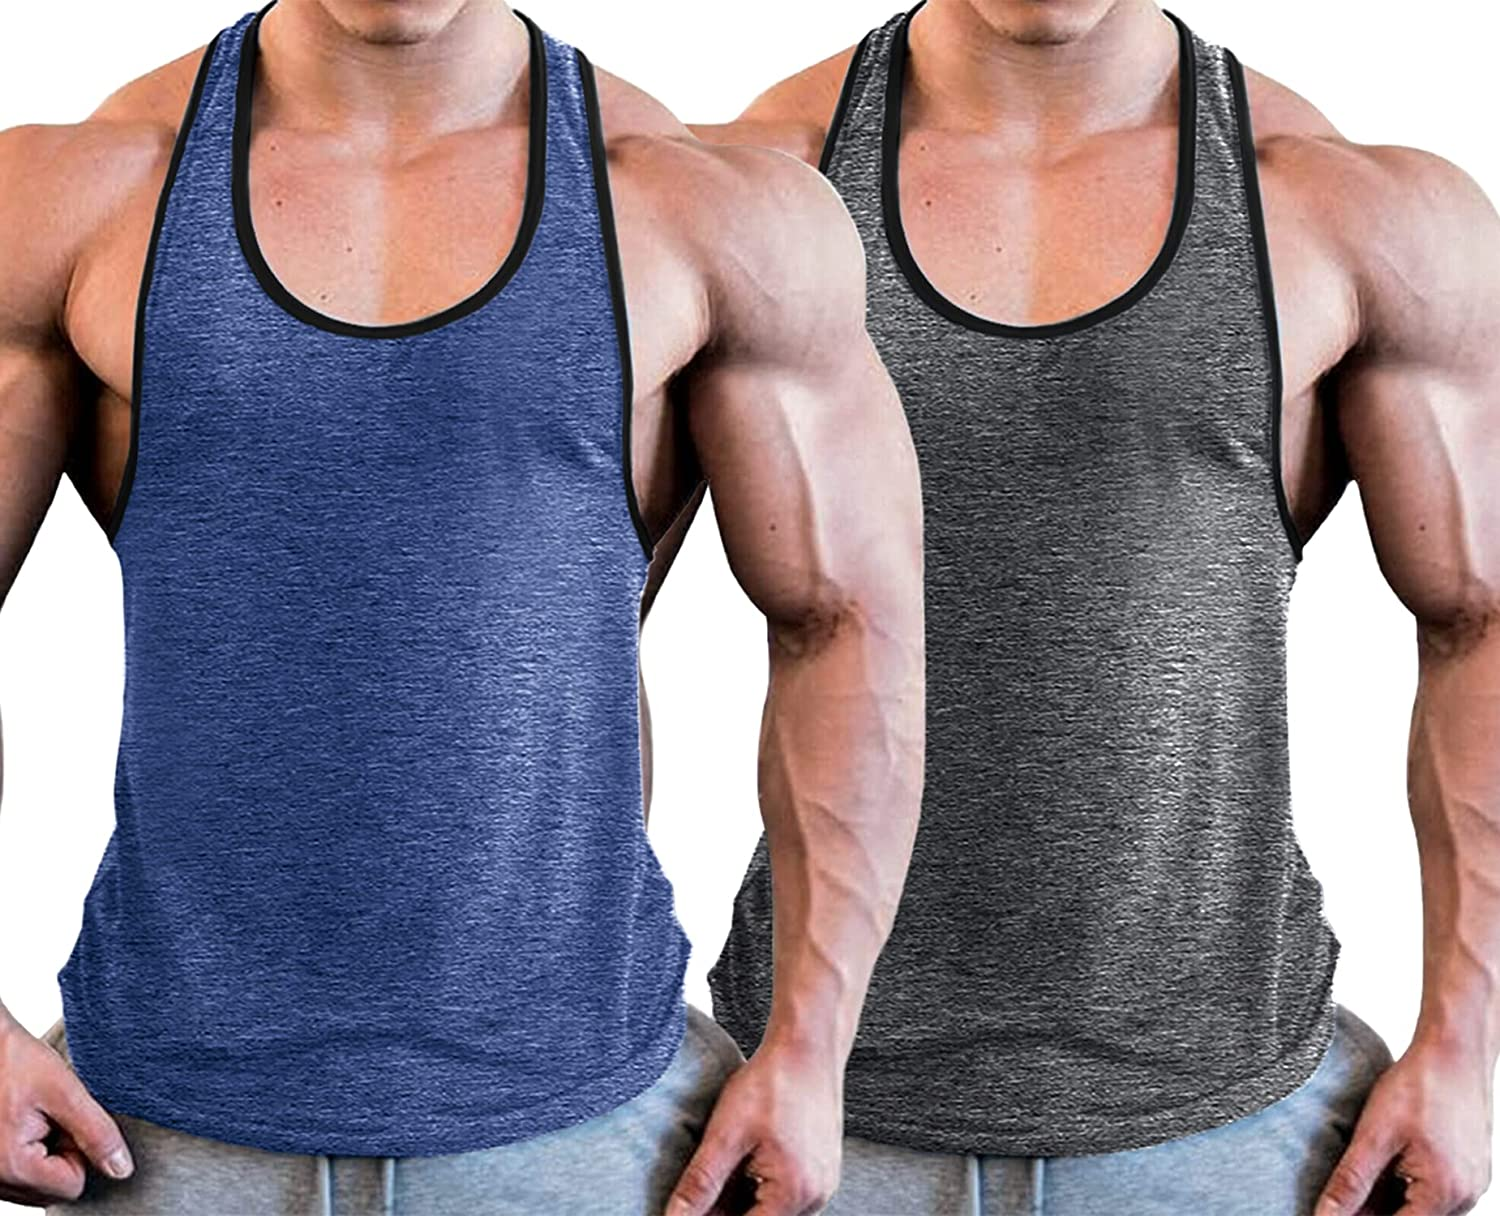 Babioboa Mens 2 Pack Gym Tank Tops Dry Fit Y-Back Workout Muscle Tee Stringer Bodybuilding T-Shirts